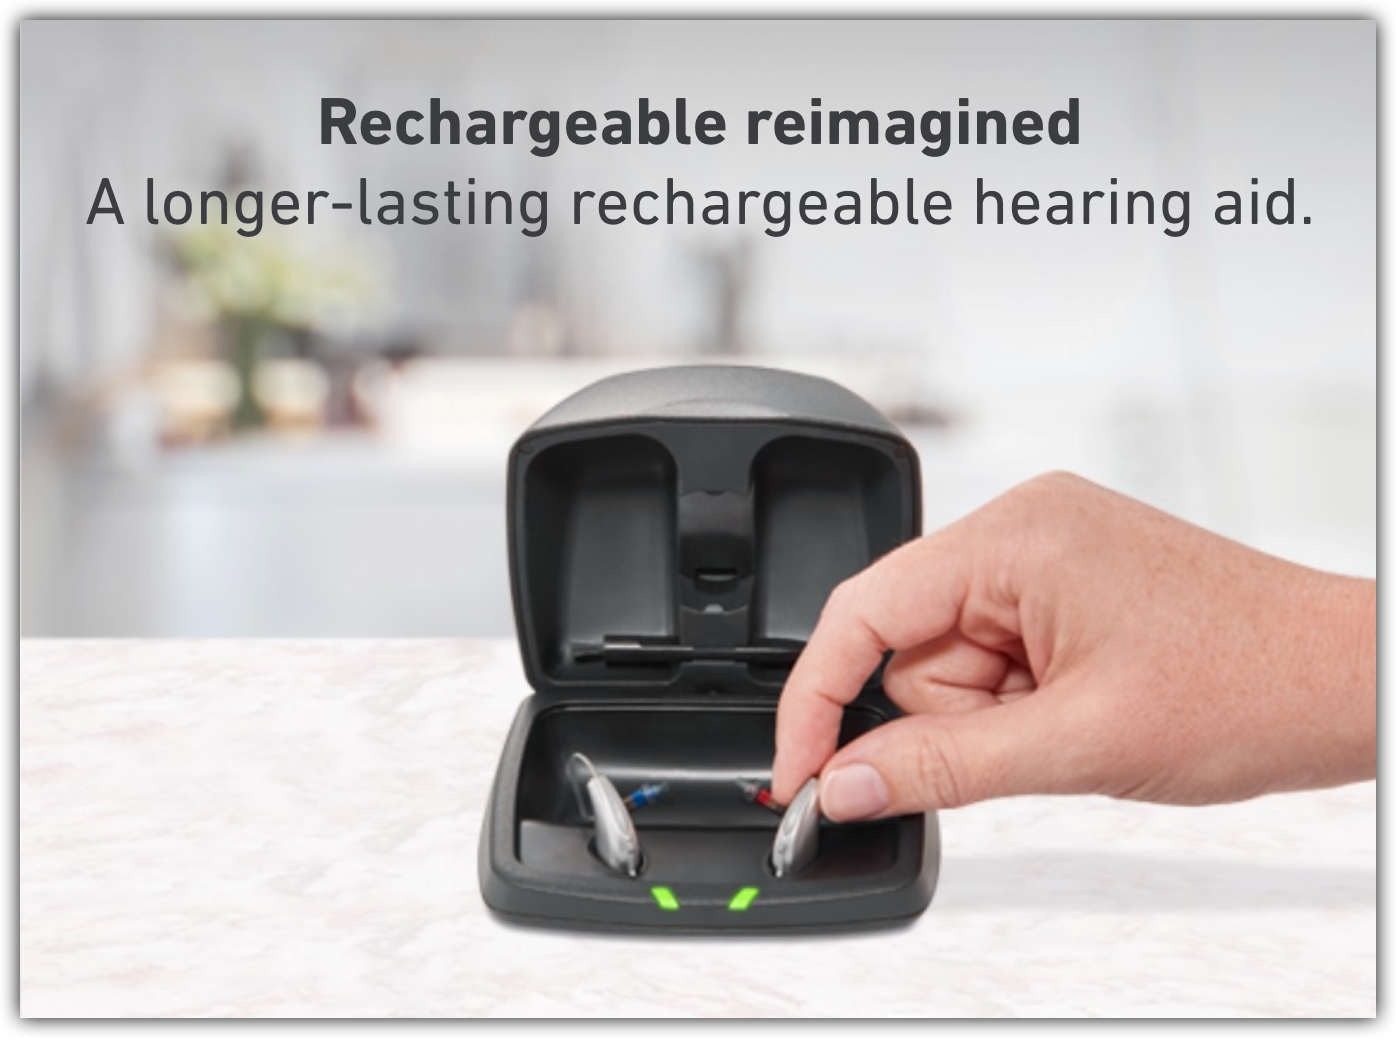 starkey charging dock for hearing aids